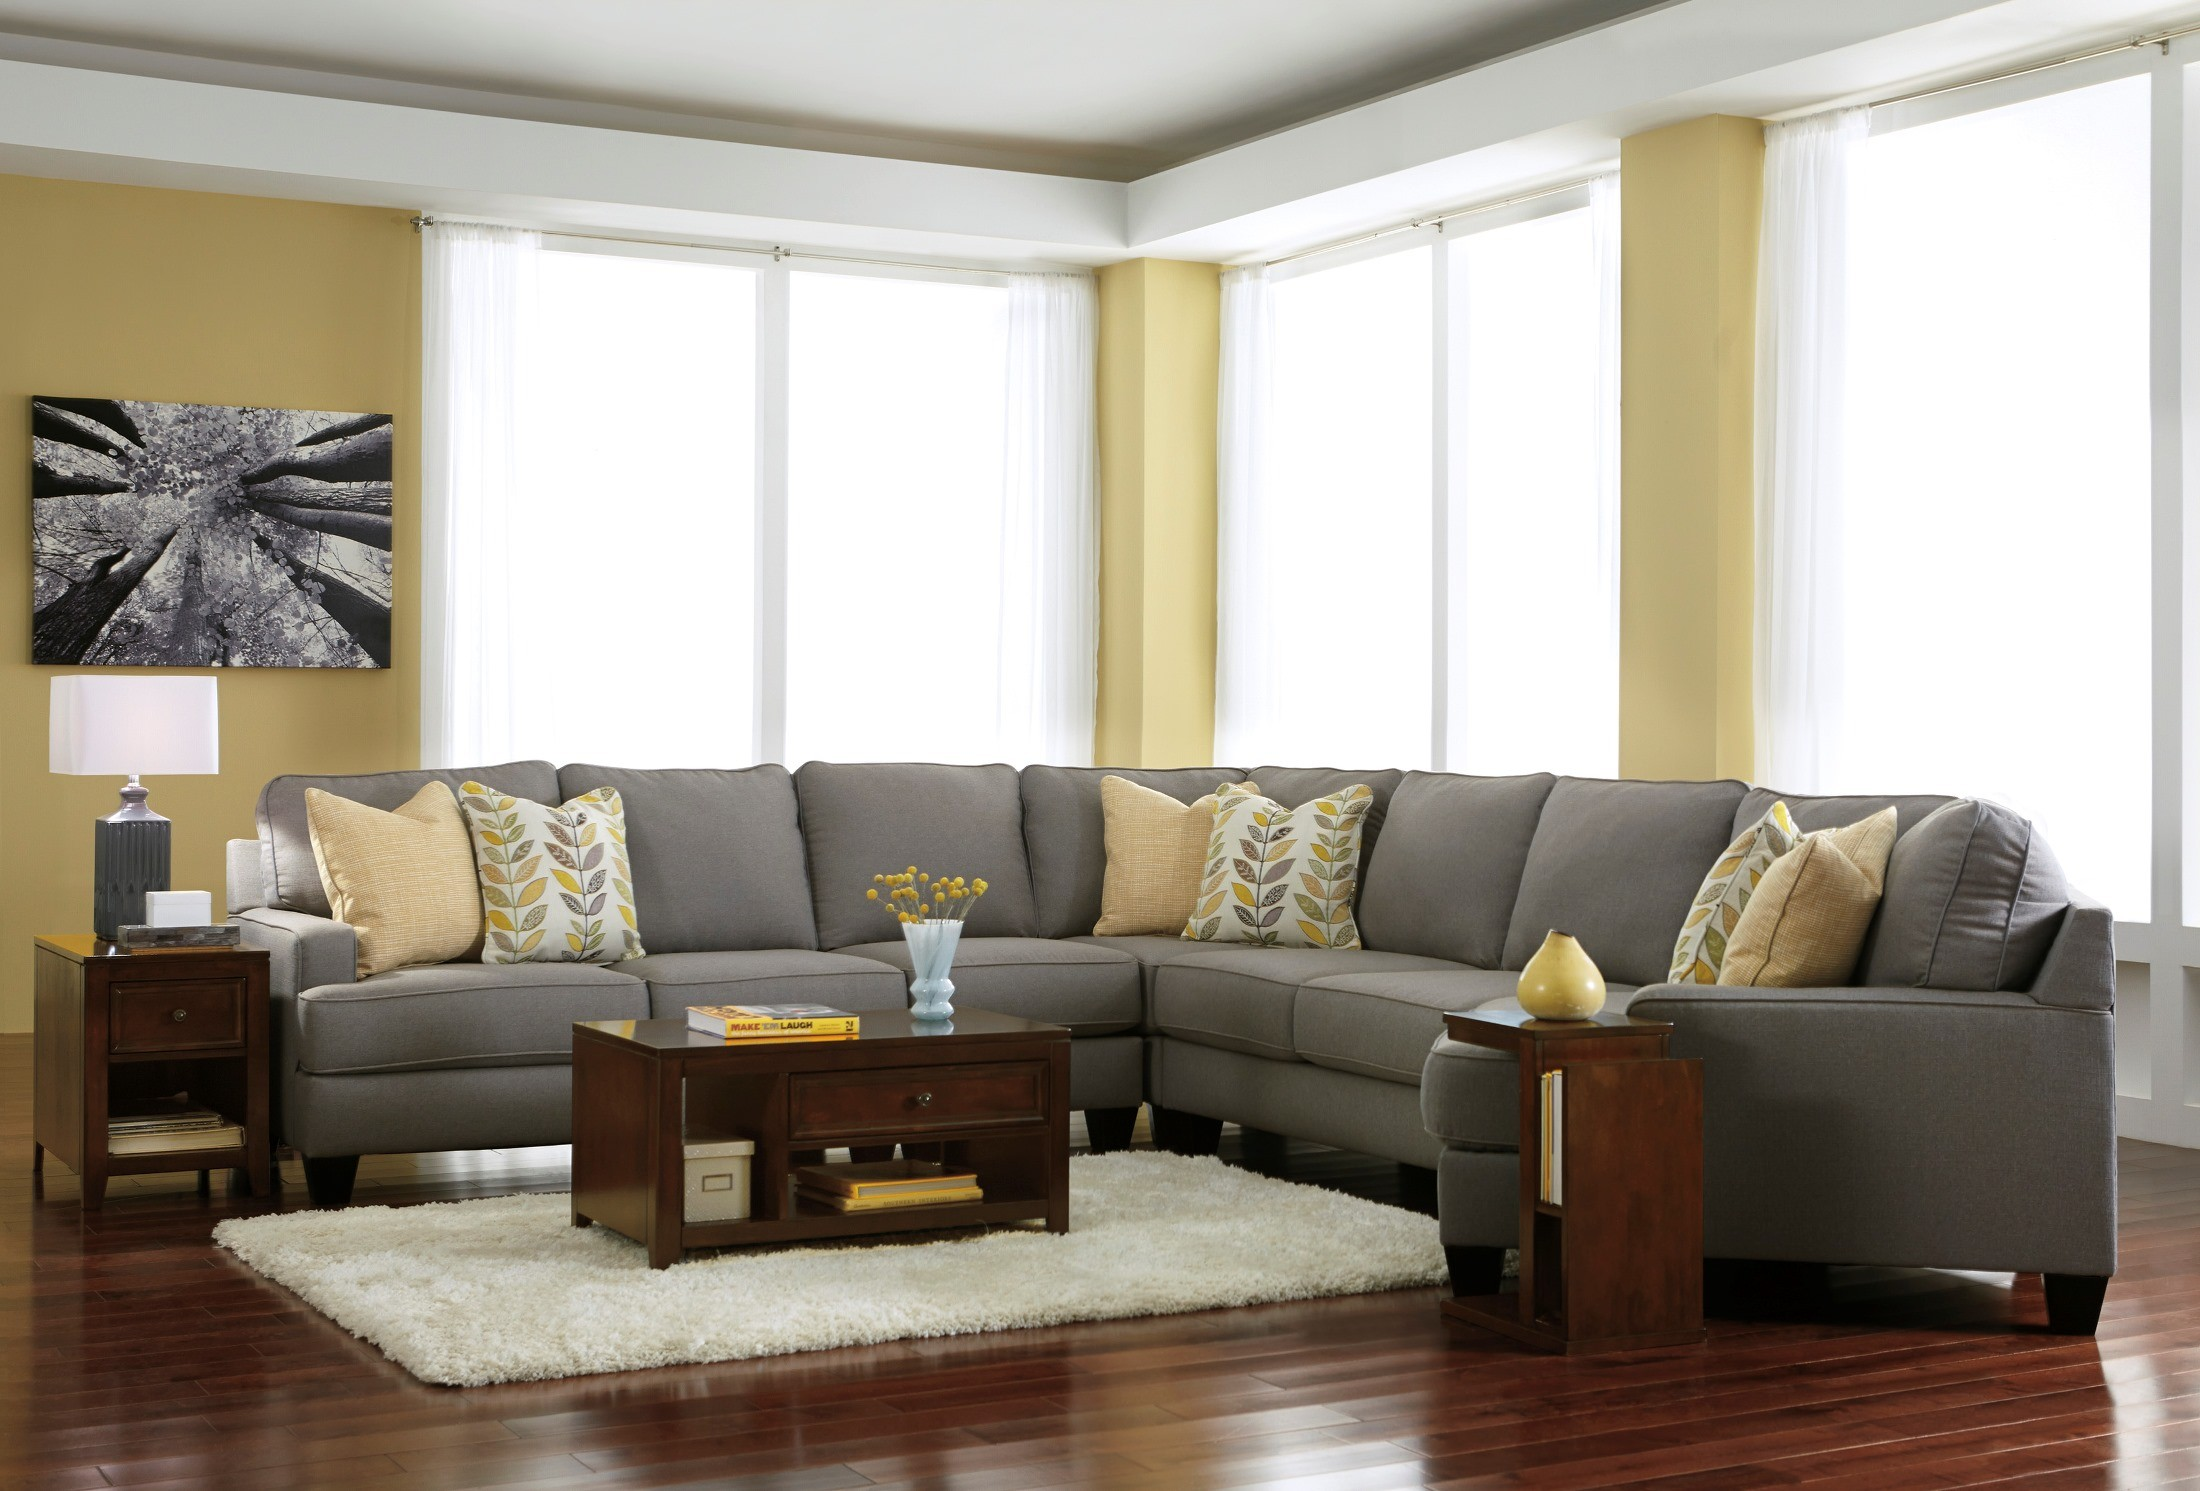 Excellent Light Gray Couches With Accent Chair 20 Photos Blue Denim Caraccident5 Cool Chair Designs And Ideas Caraccident5Info